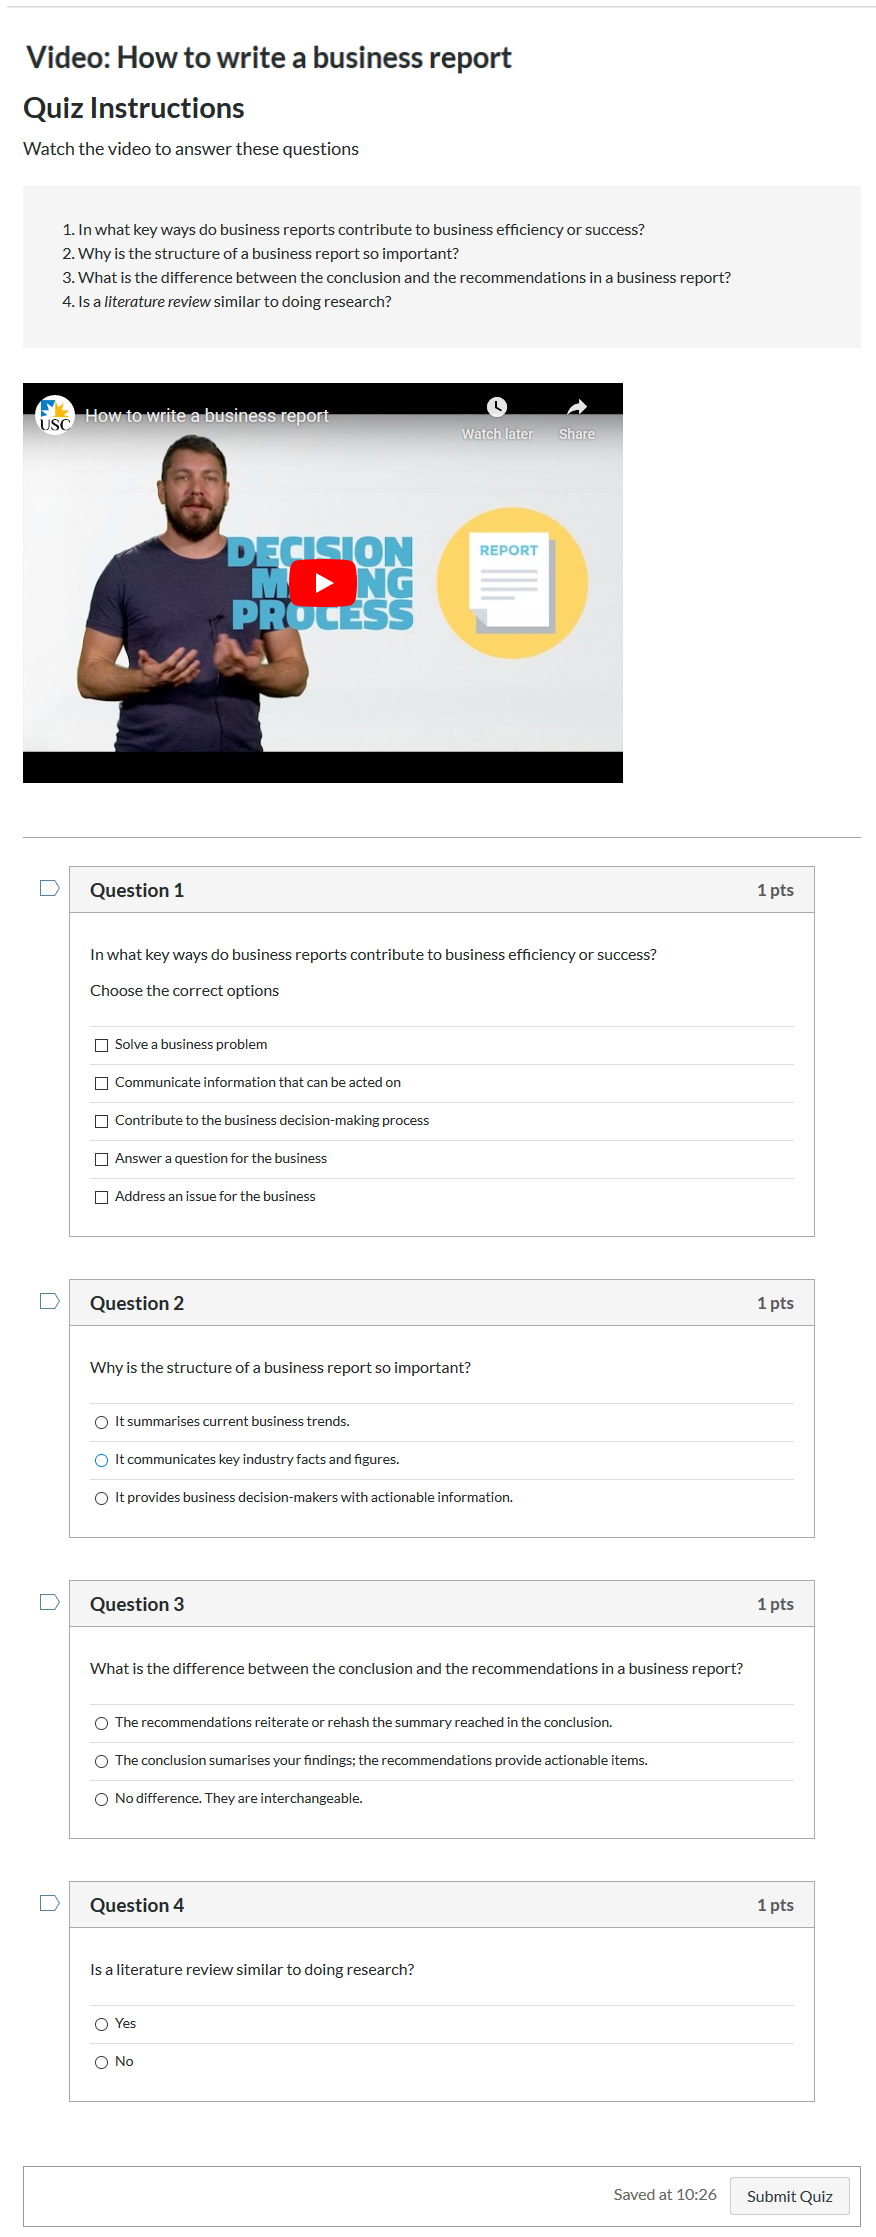 A Canvas quiz with 4 questions based on the embedded video.